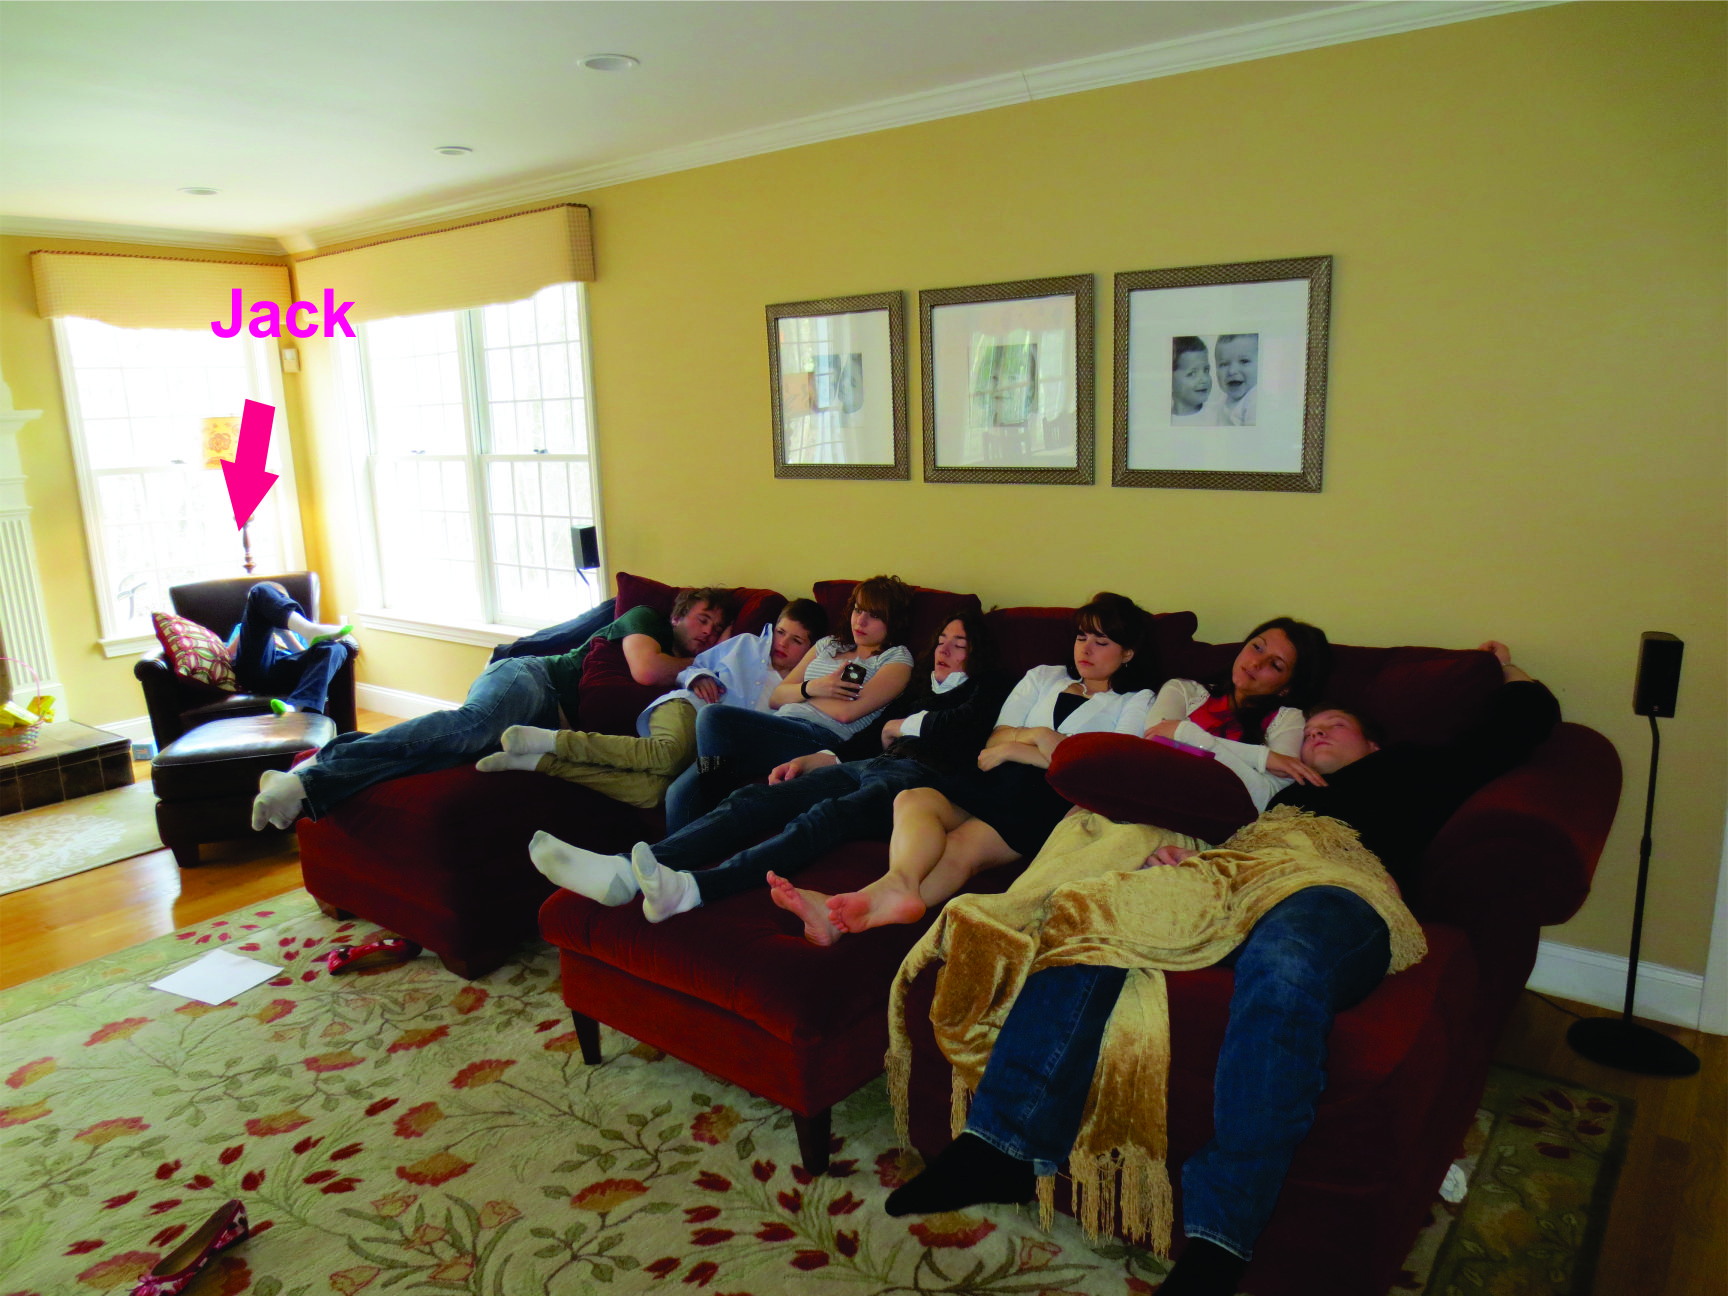 Cousins dozing on the couch